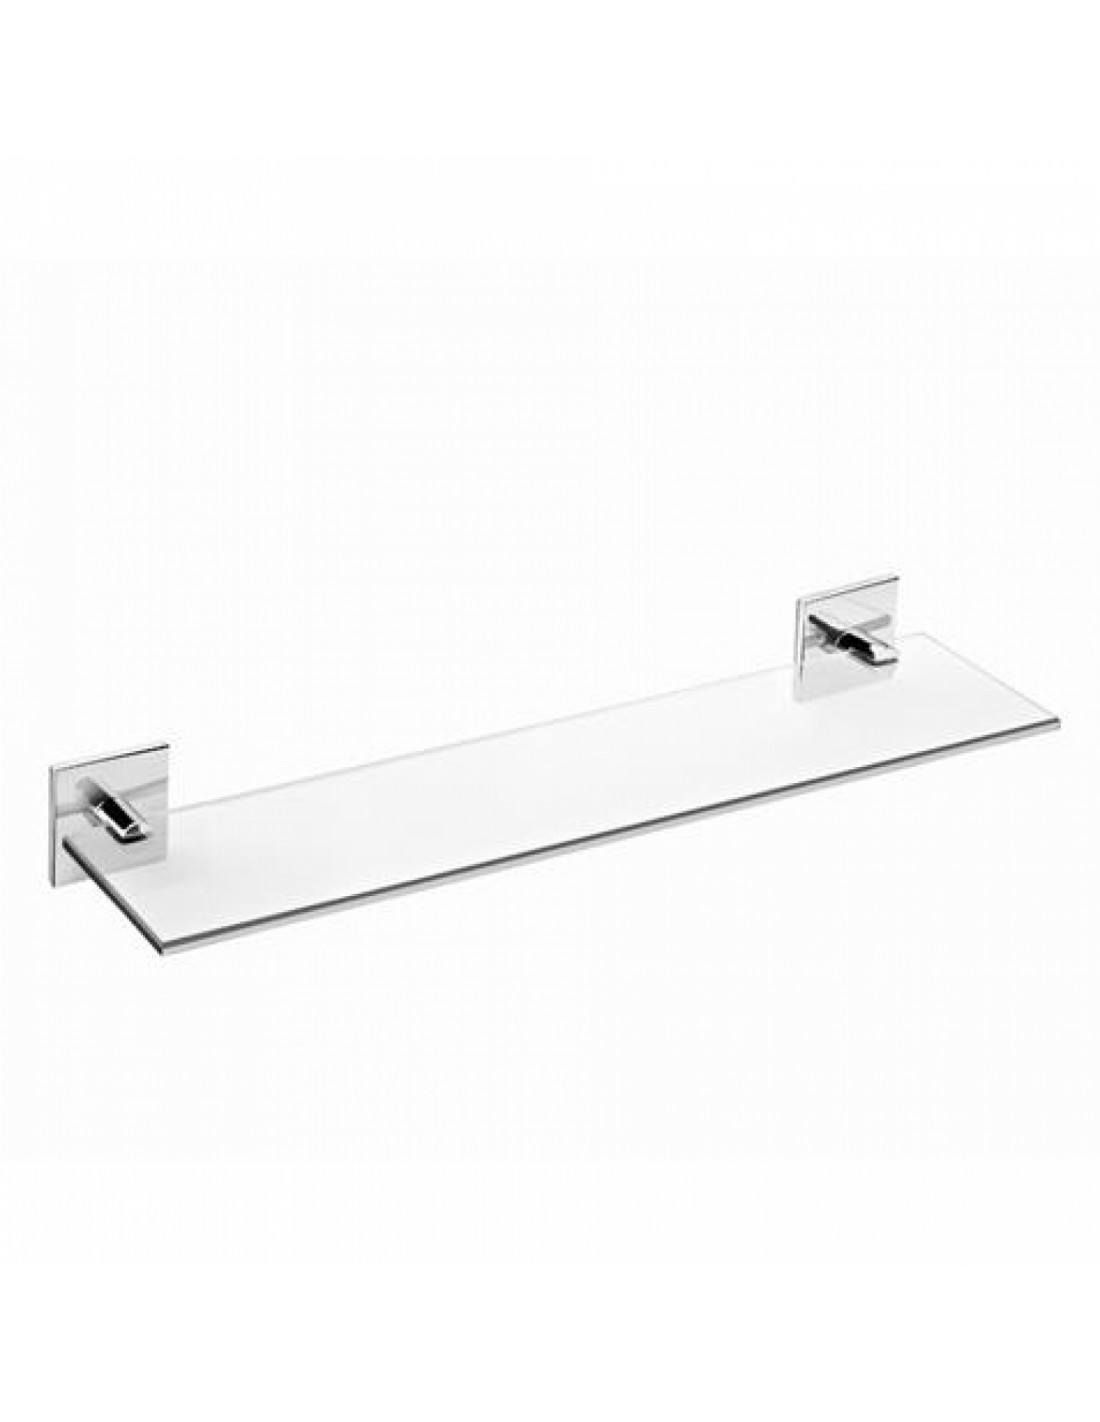 tablette salle de bain en verre 40 cm coller duo square On tablette verre salle de bain